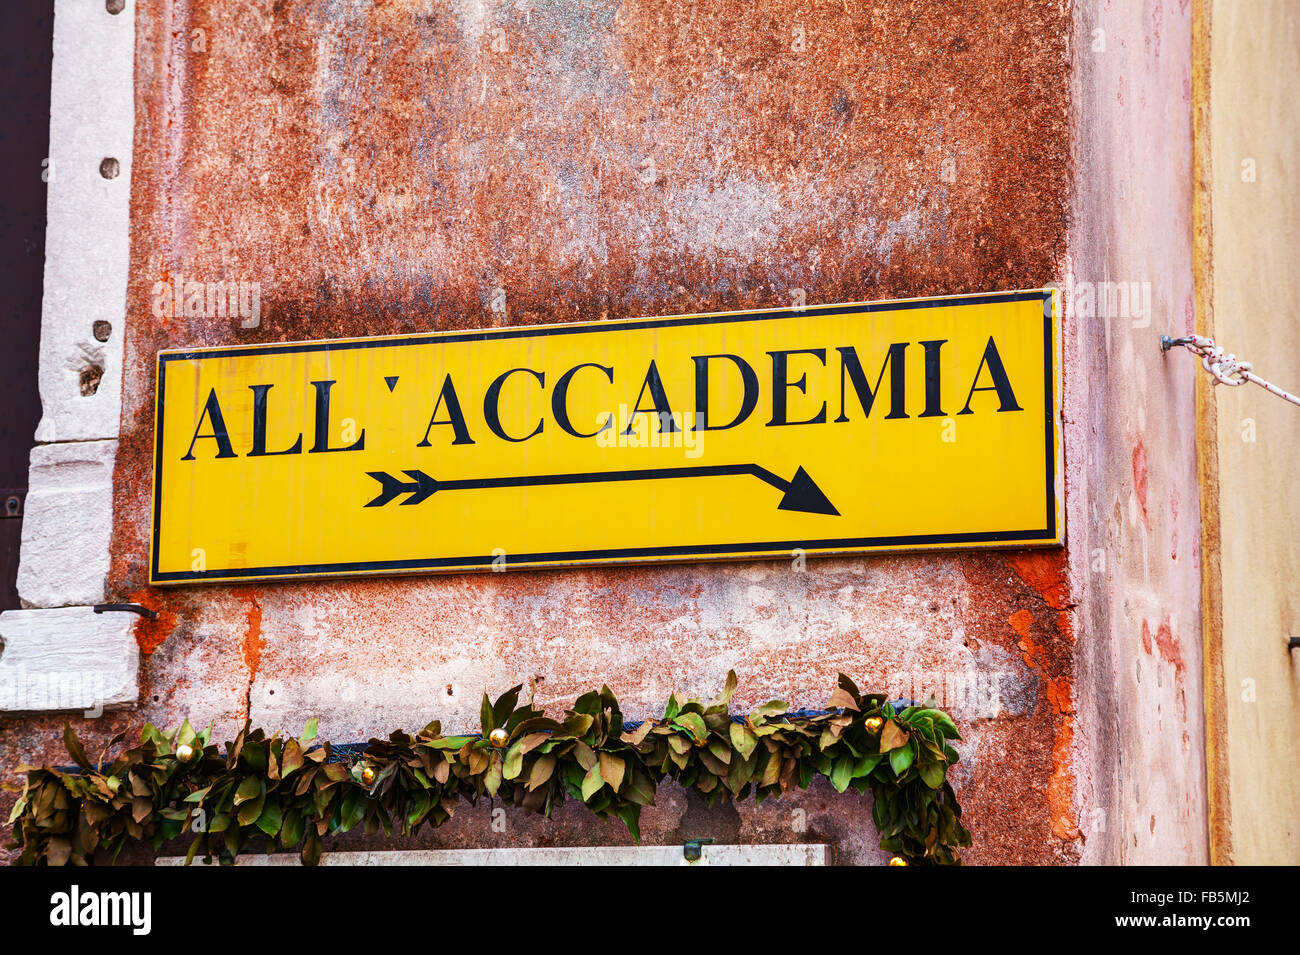 All Accademia direction sign in Venice, Italy - Stock Image